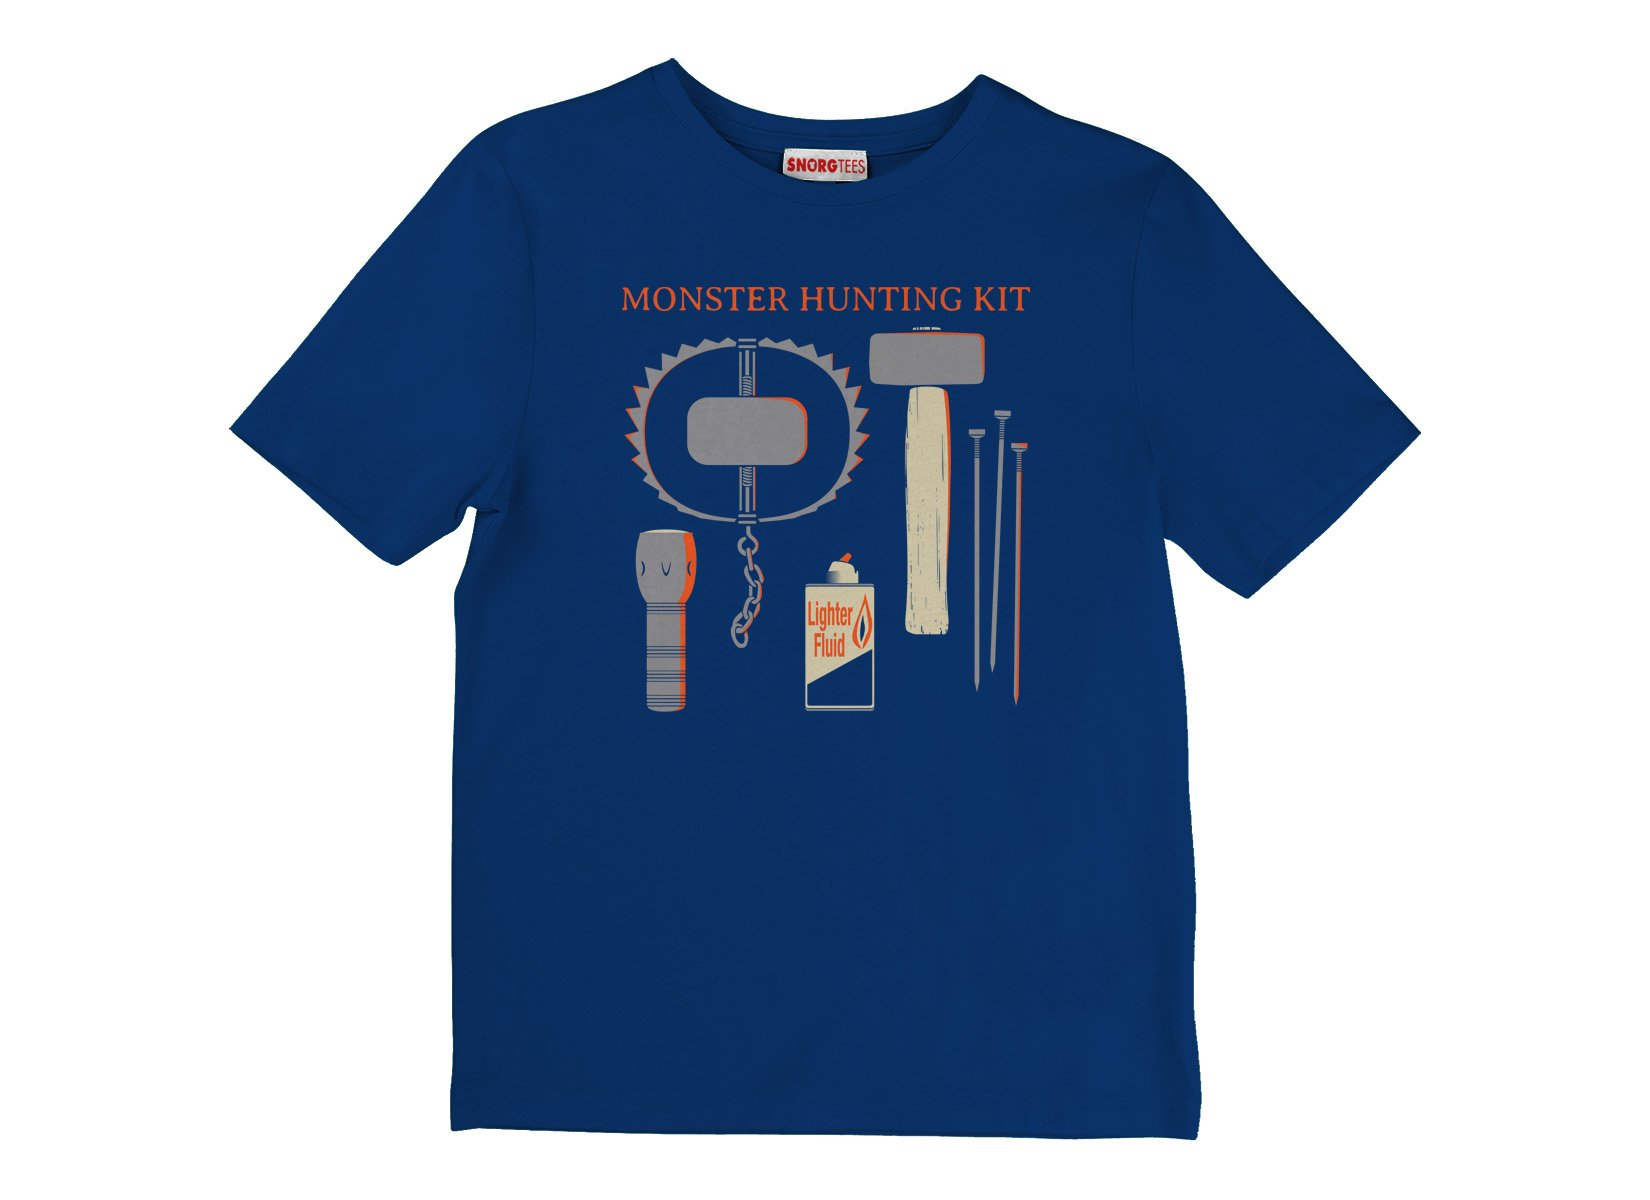 Monster Hunting Kit on Kids T-Shirt